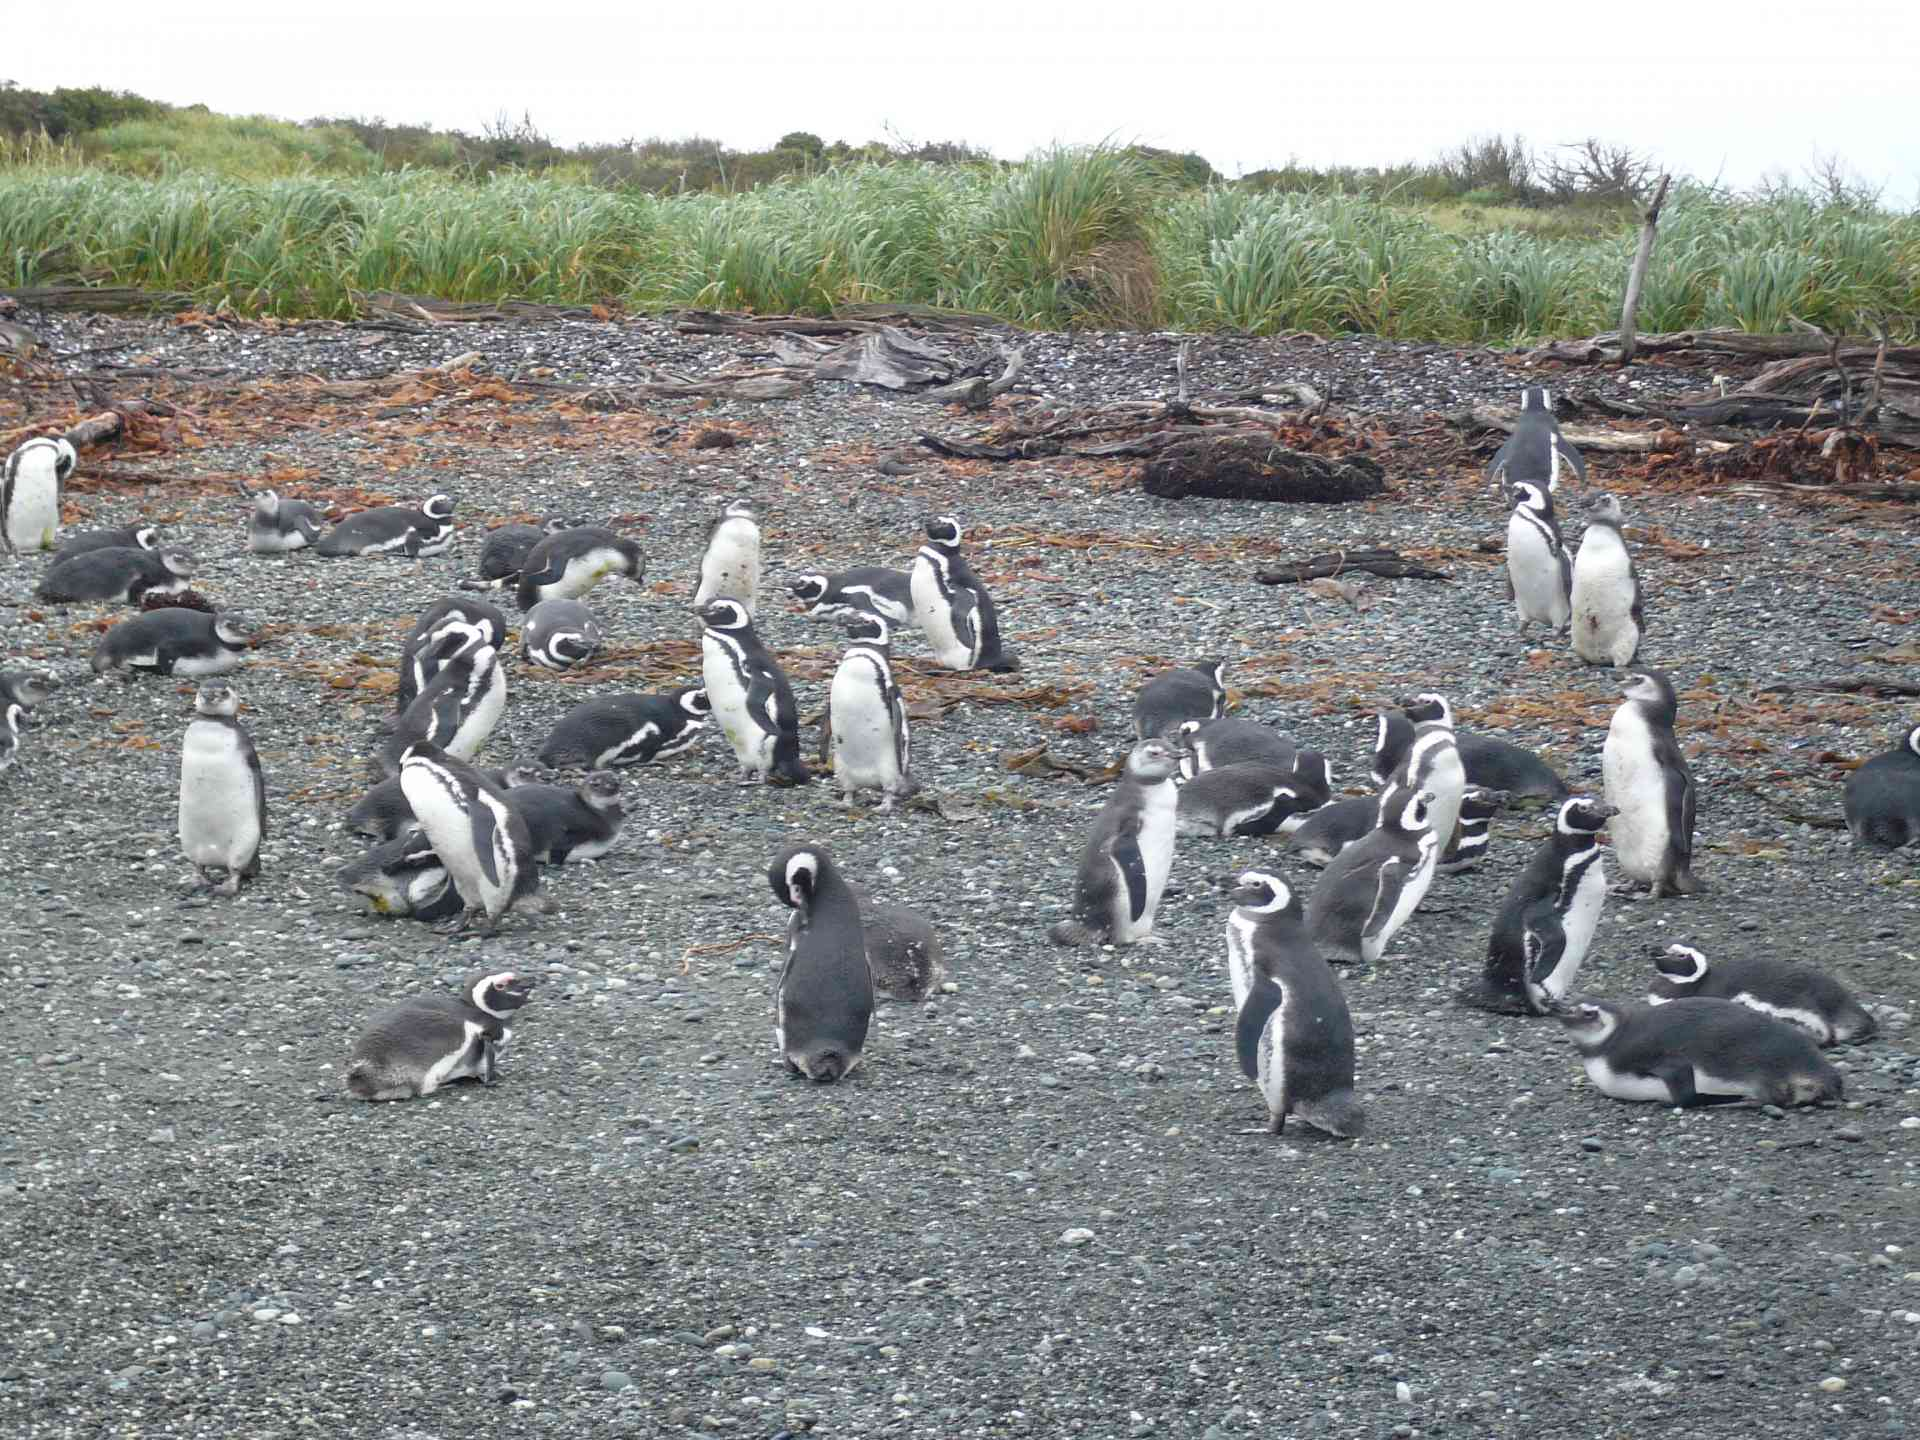 Penguins of Patagonia, Chile by Marion Bunnik